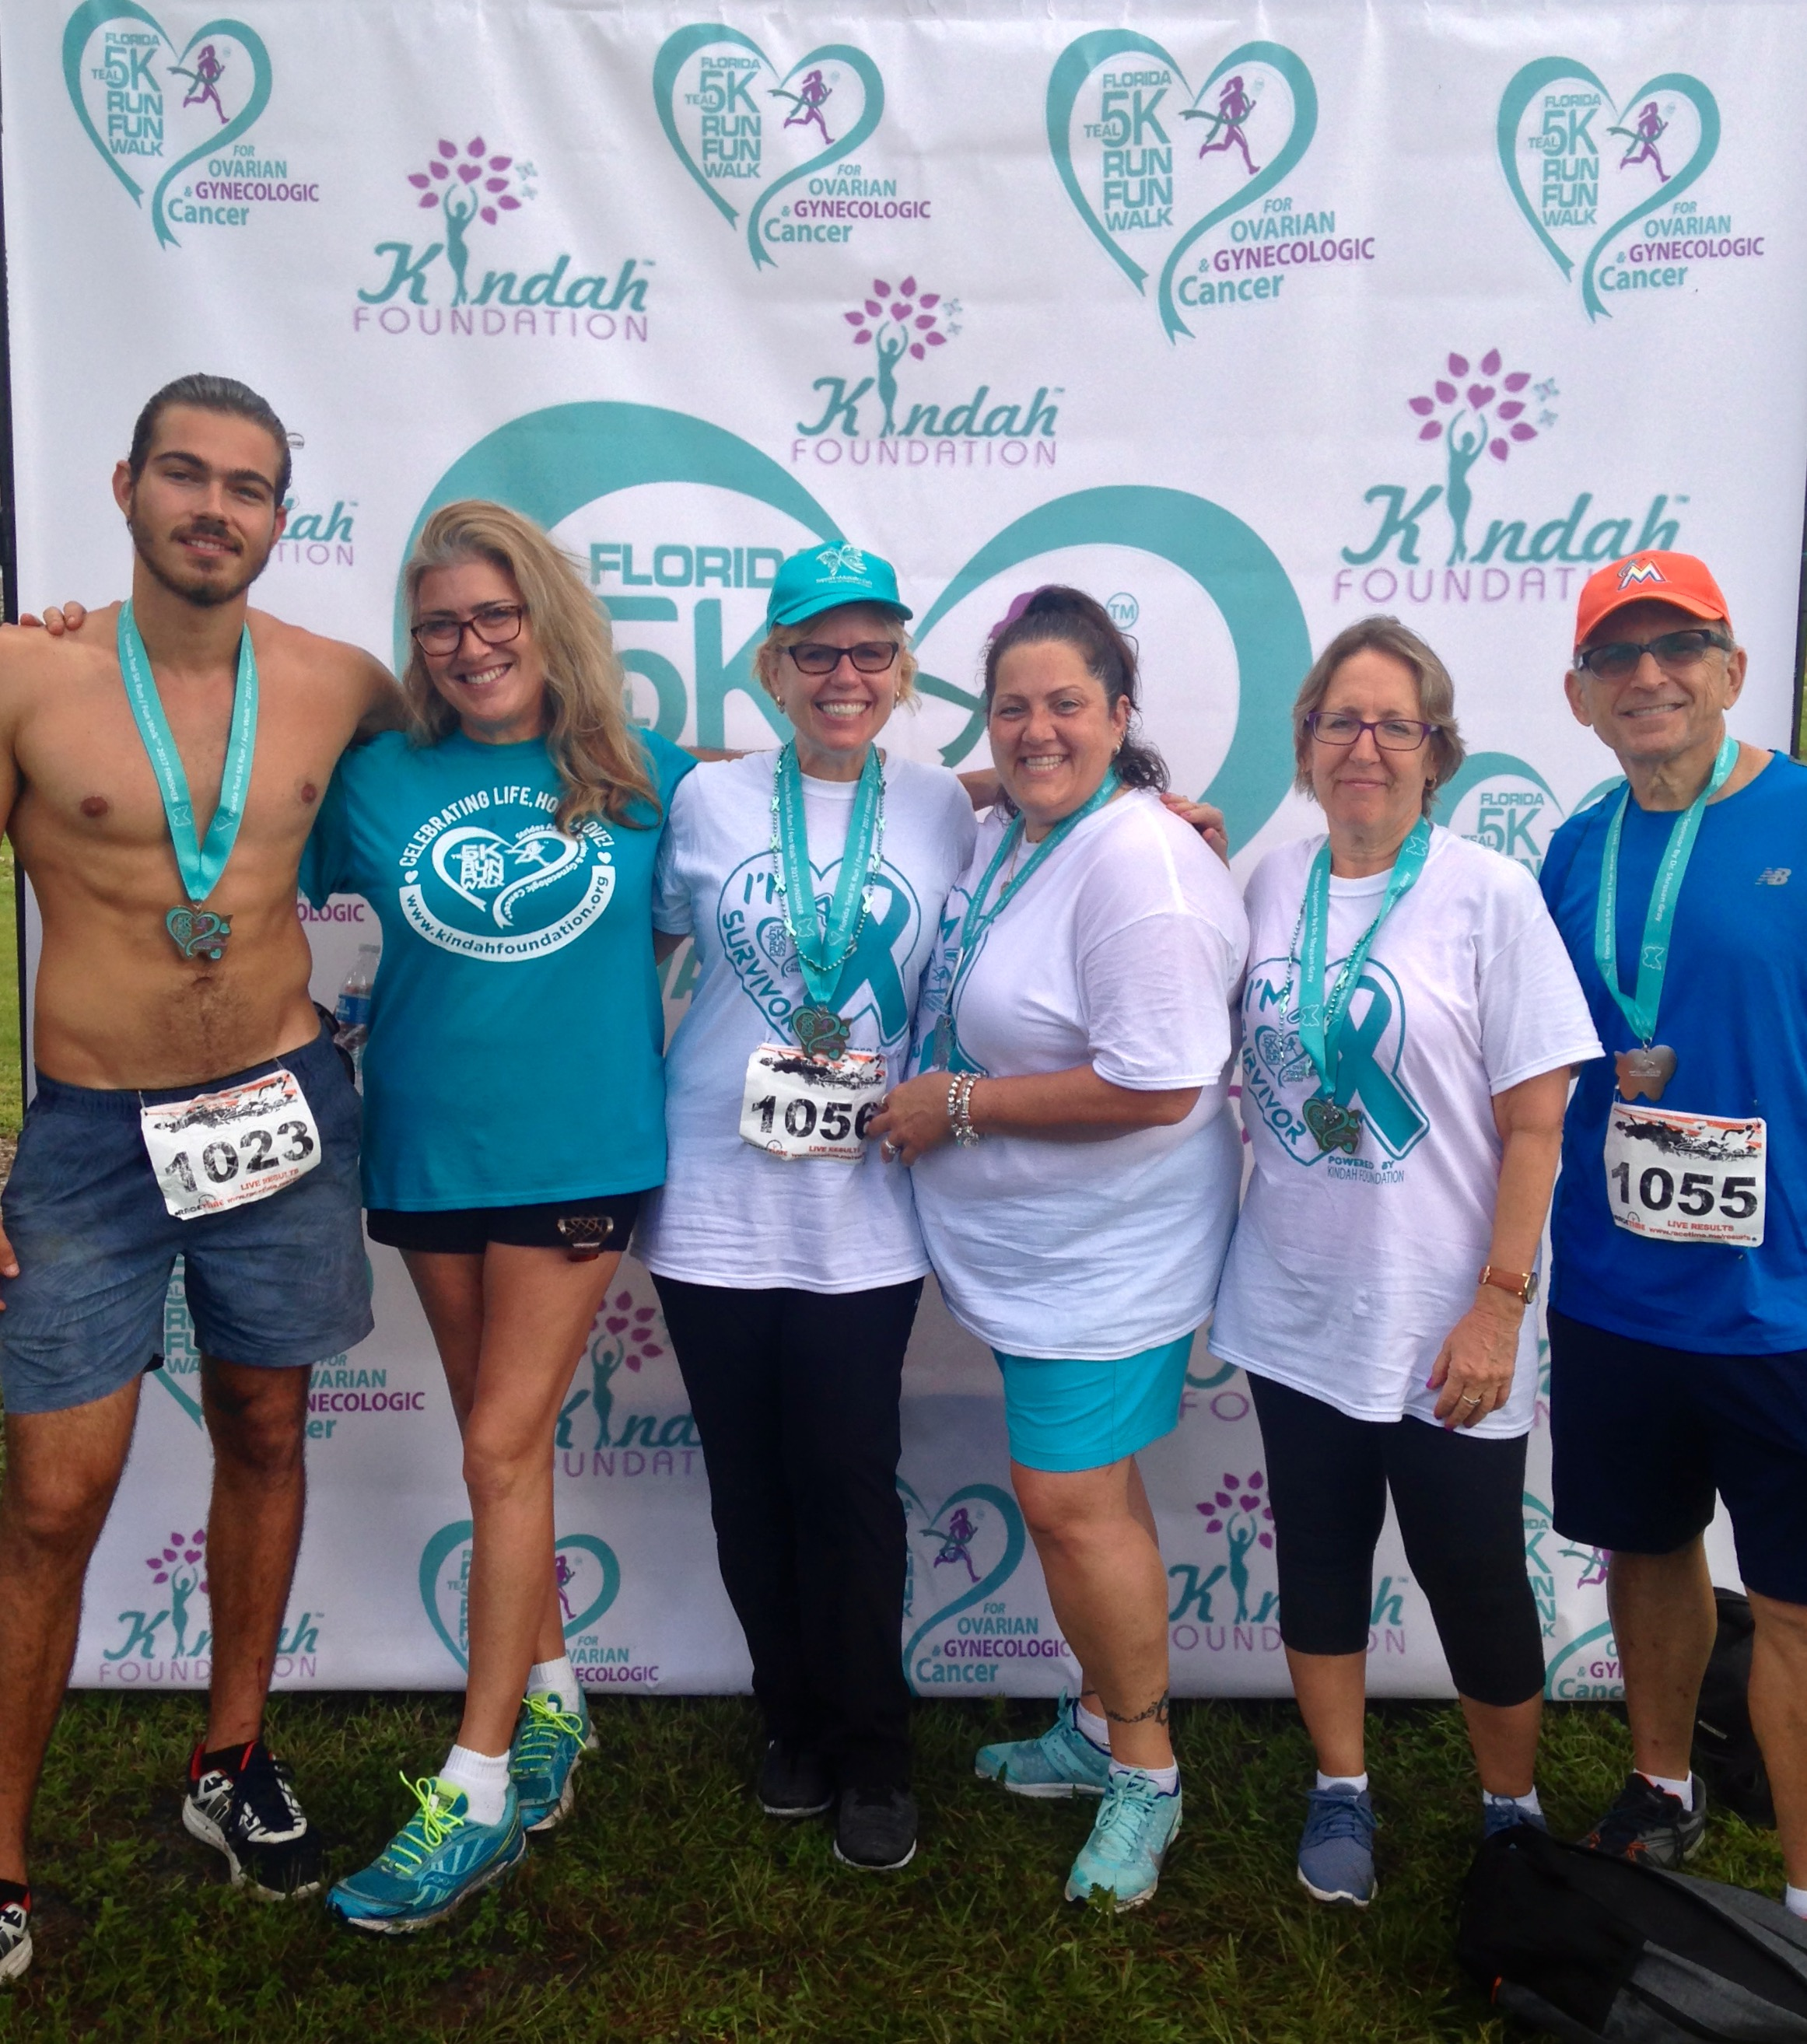 FullSizeRender 008 - Florida Teal 5K Run/ Fun Walk 2017